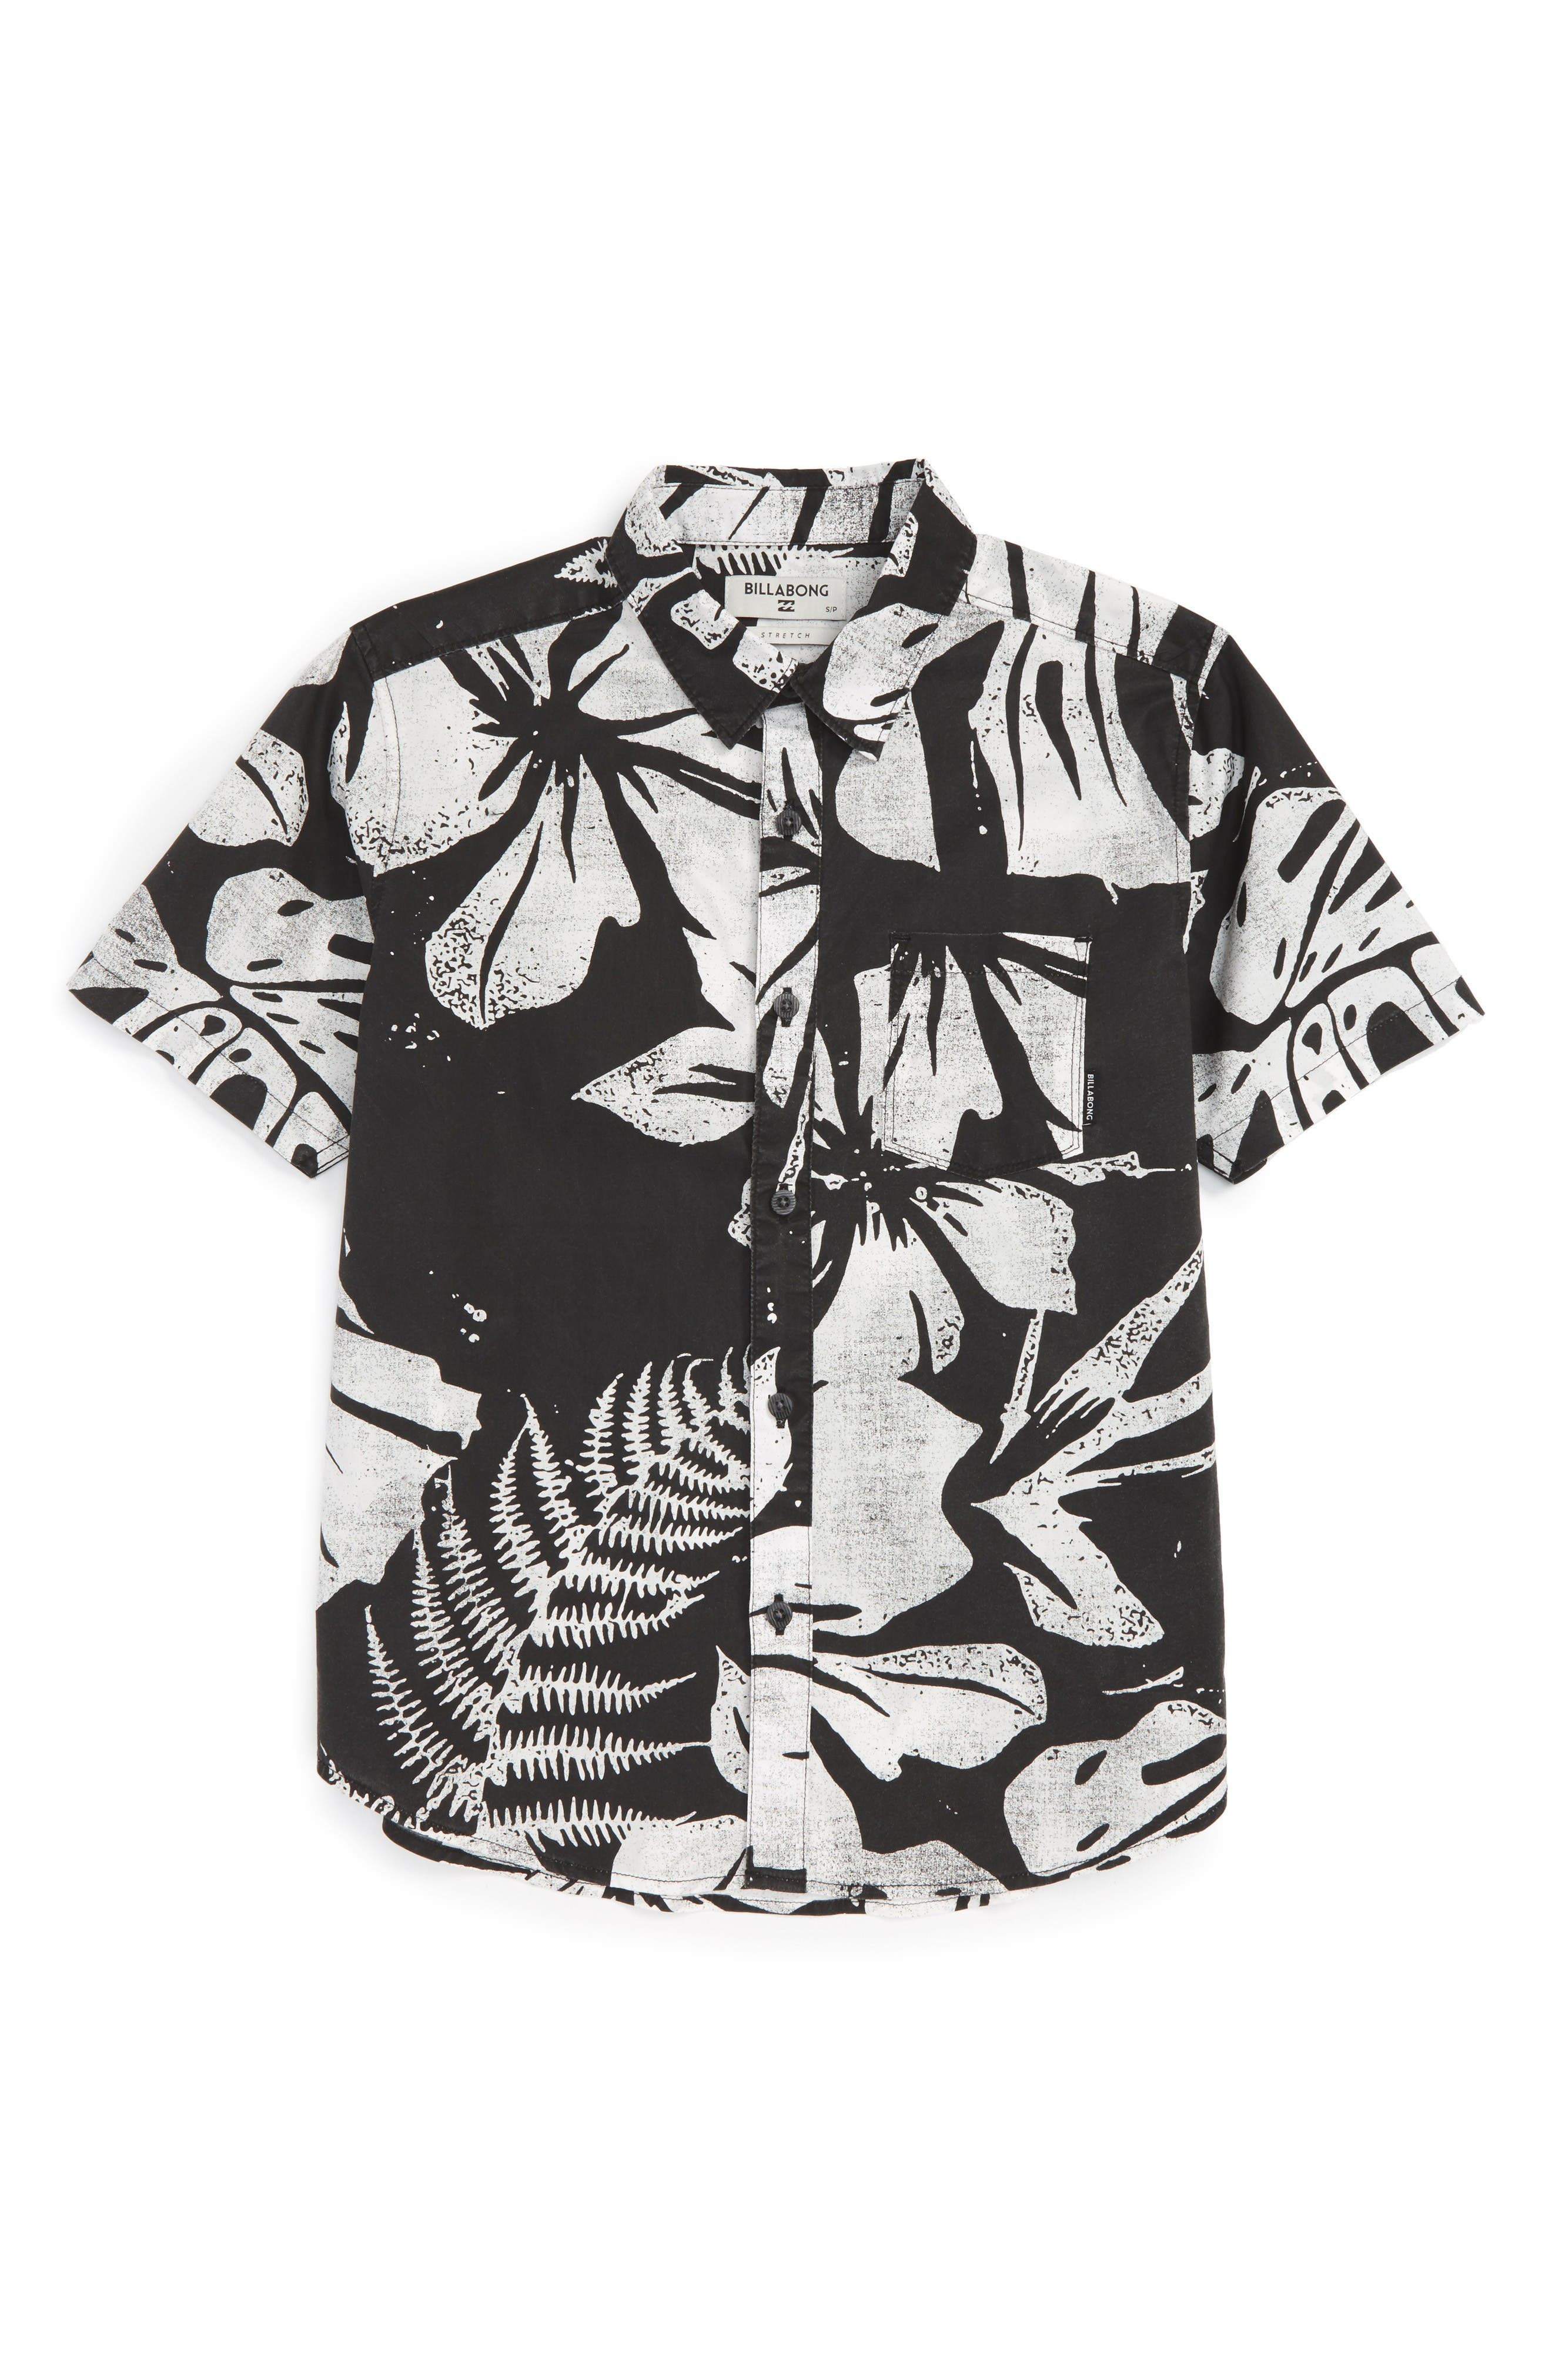 Alternate Image 1 Selected - Billabong Tropics Short Sleeve Woven Shirt (Little Boys)